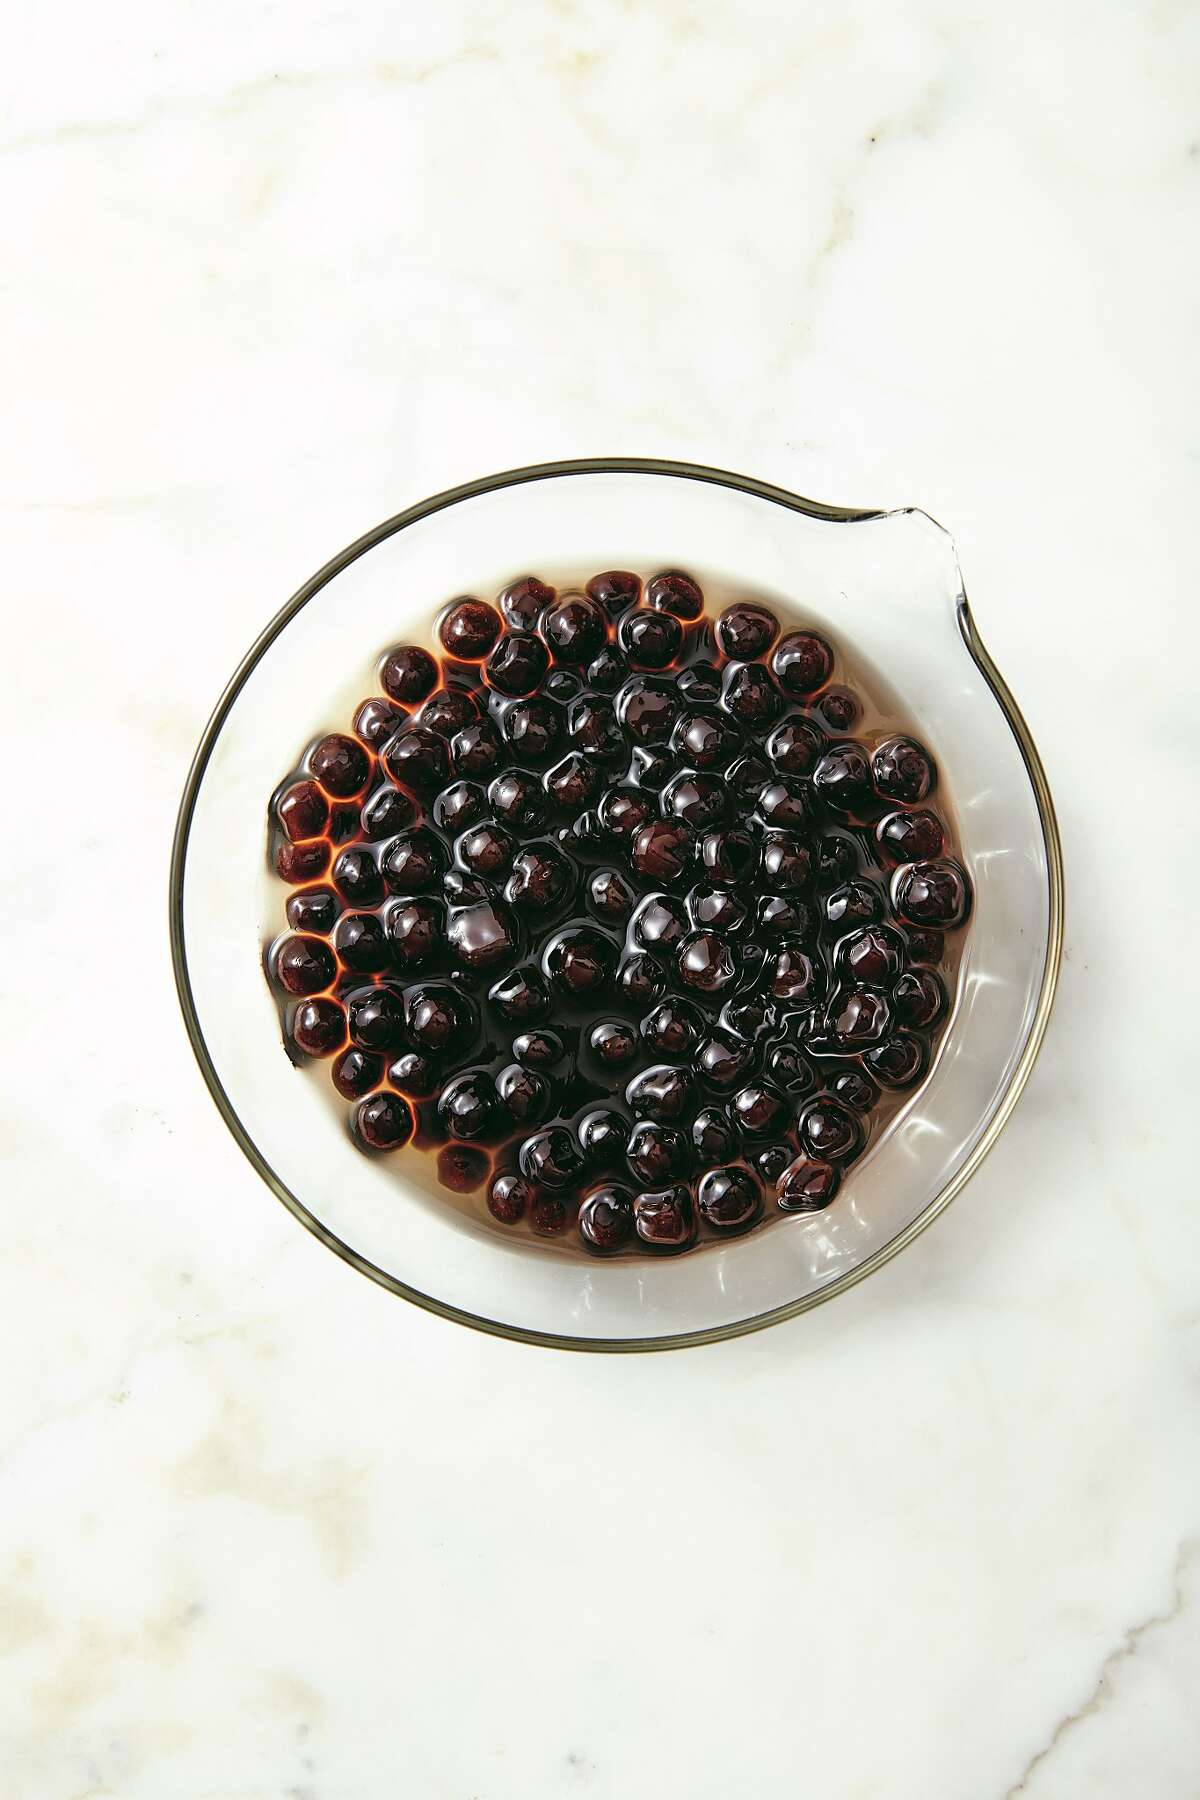 """Preparing tapioca pearls takes more than hour, including a soak in simple syrup. The recipe comes from Boba Guys founders Andrew Chau and Bin Chen's new cookbook, """"The Boba Book"""" (Clarkson Potter)."""